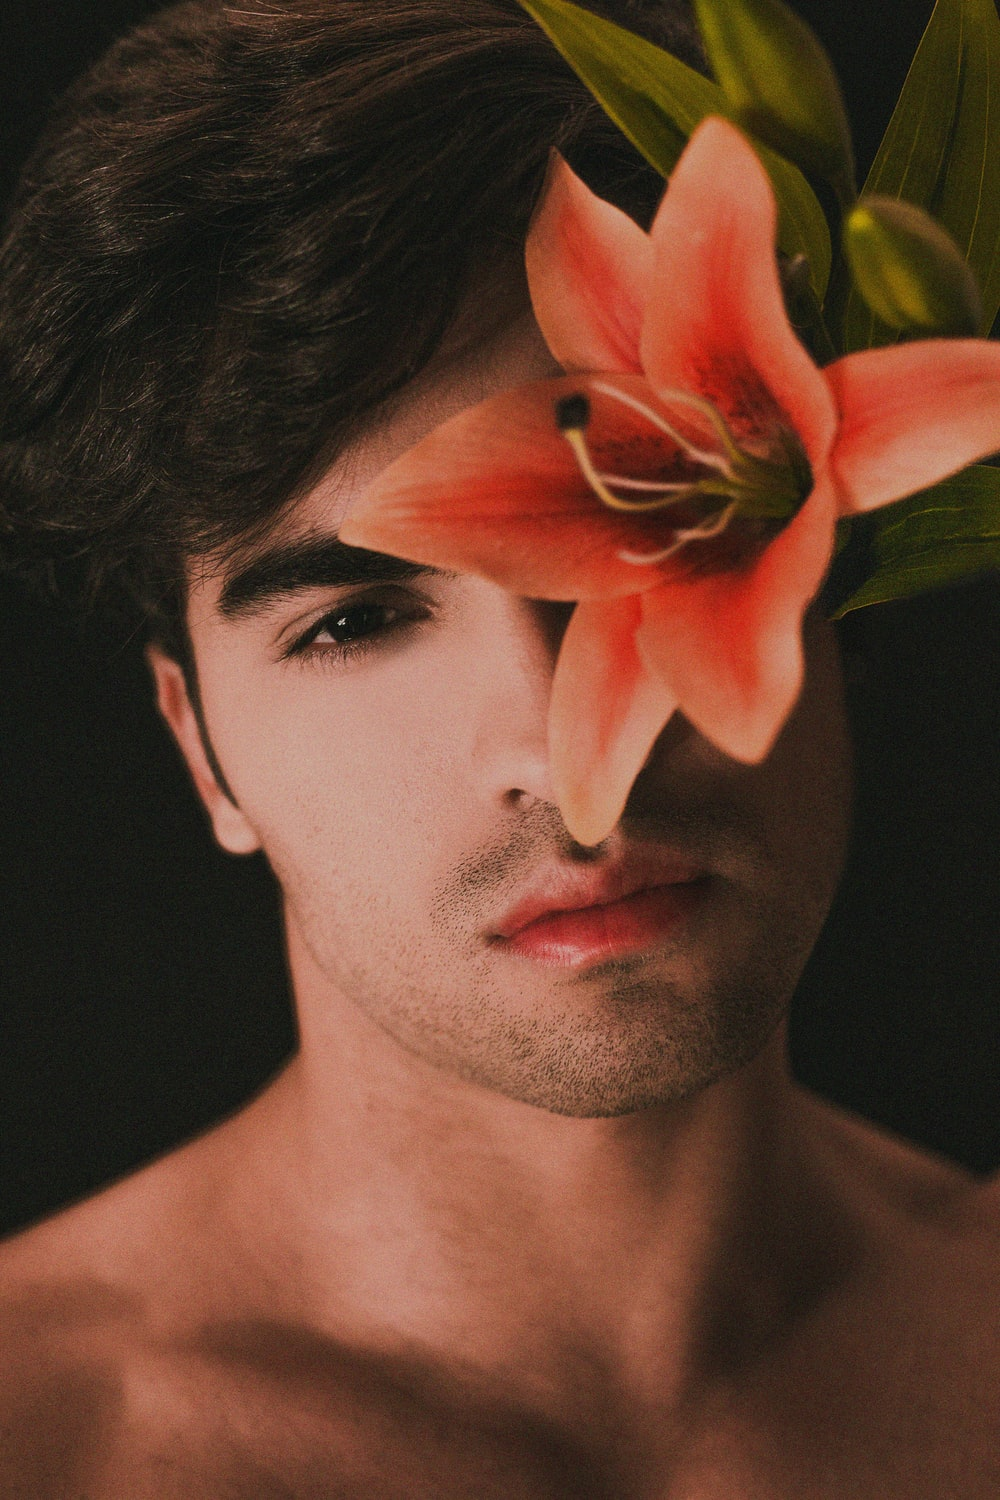 topless man with pink flower on ear